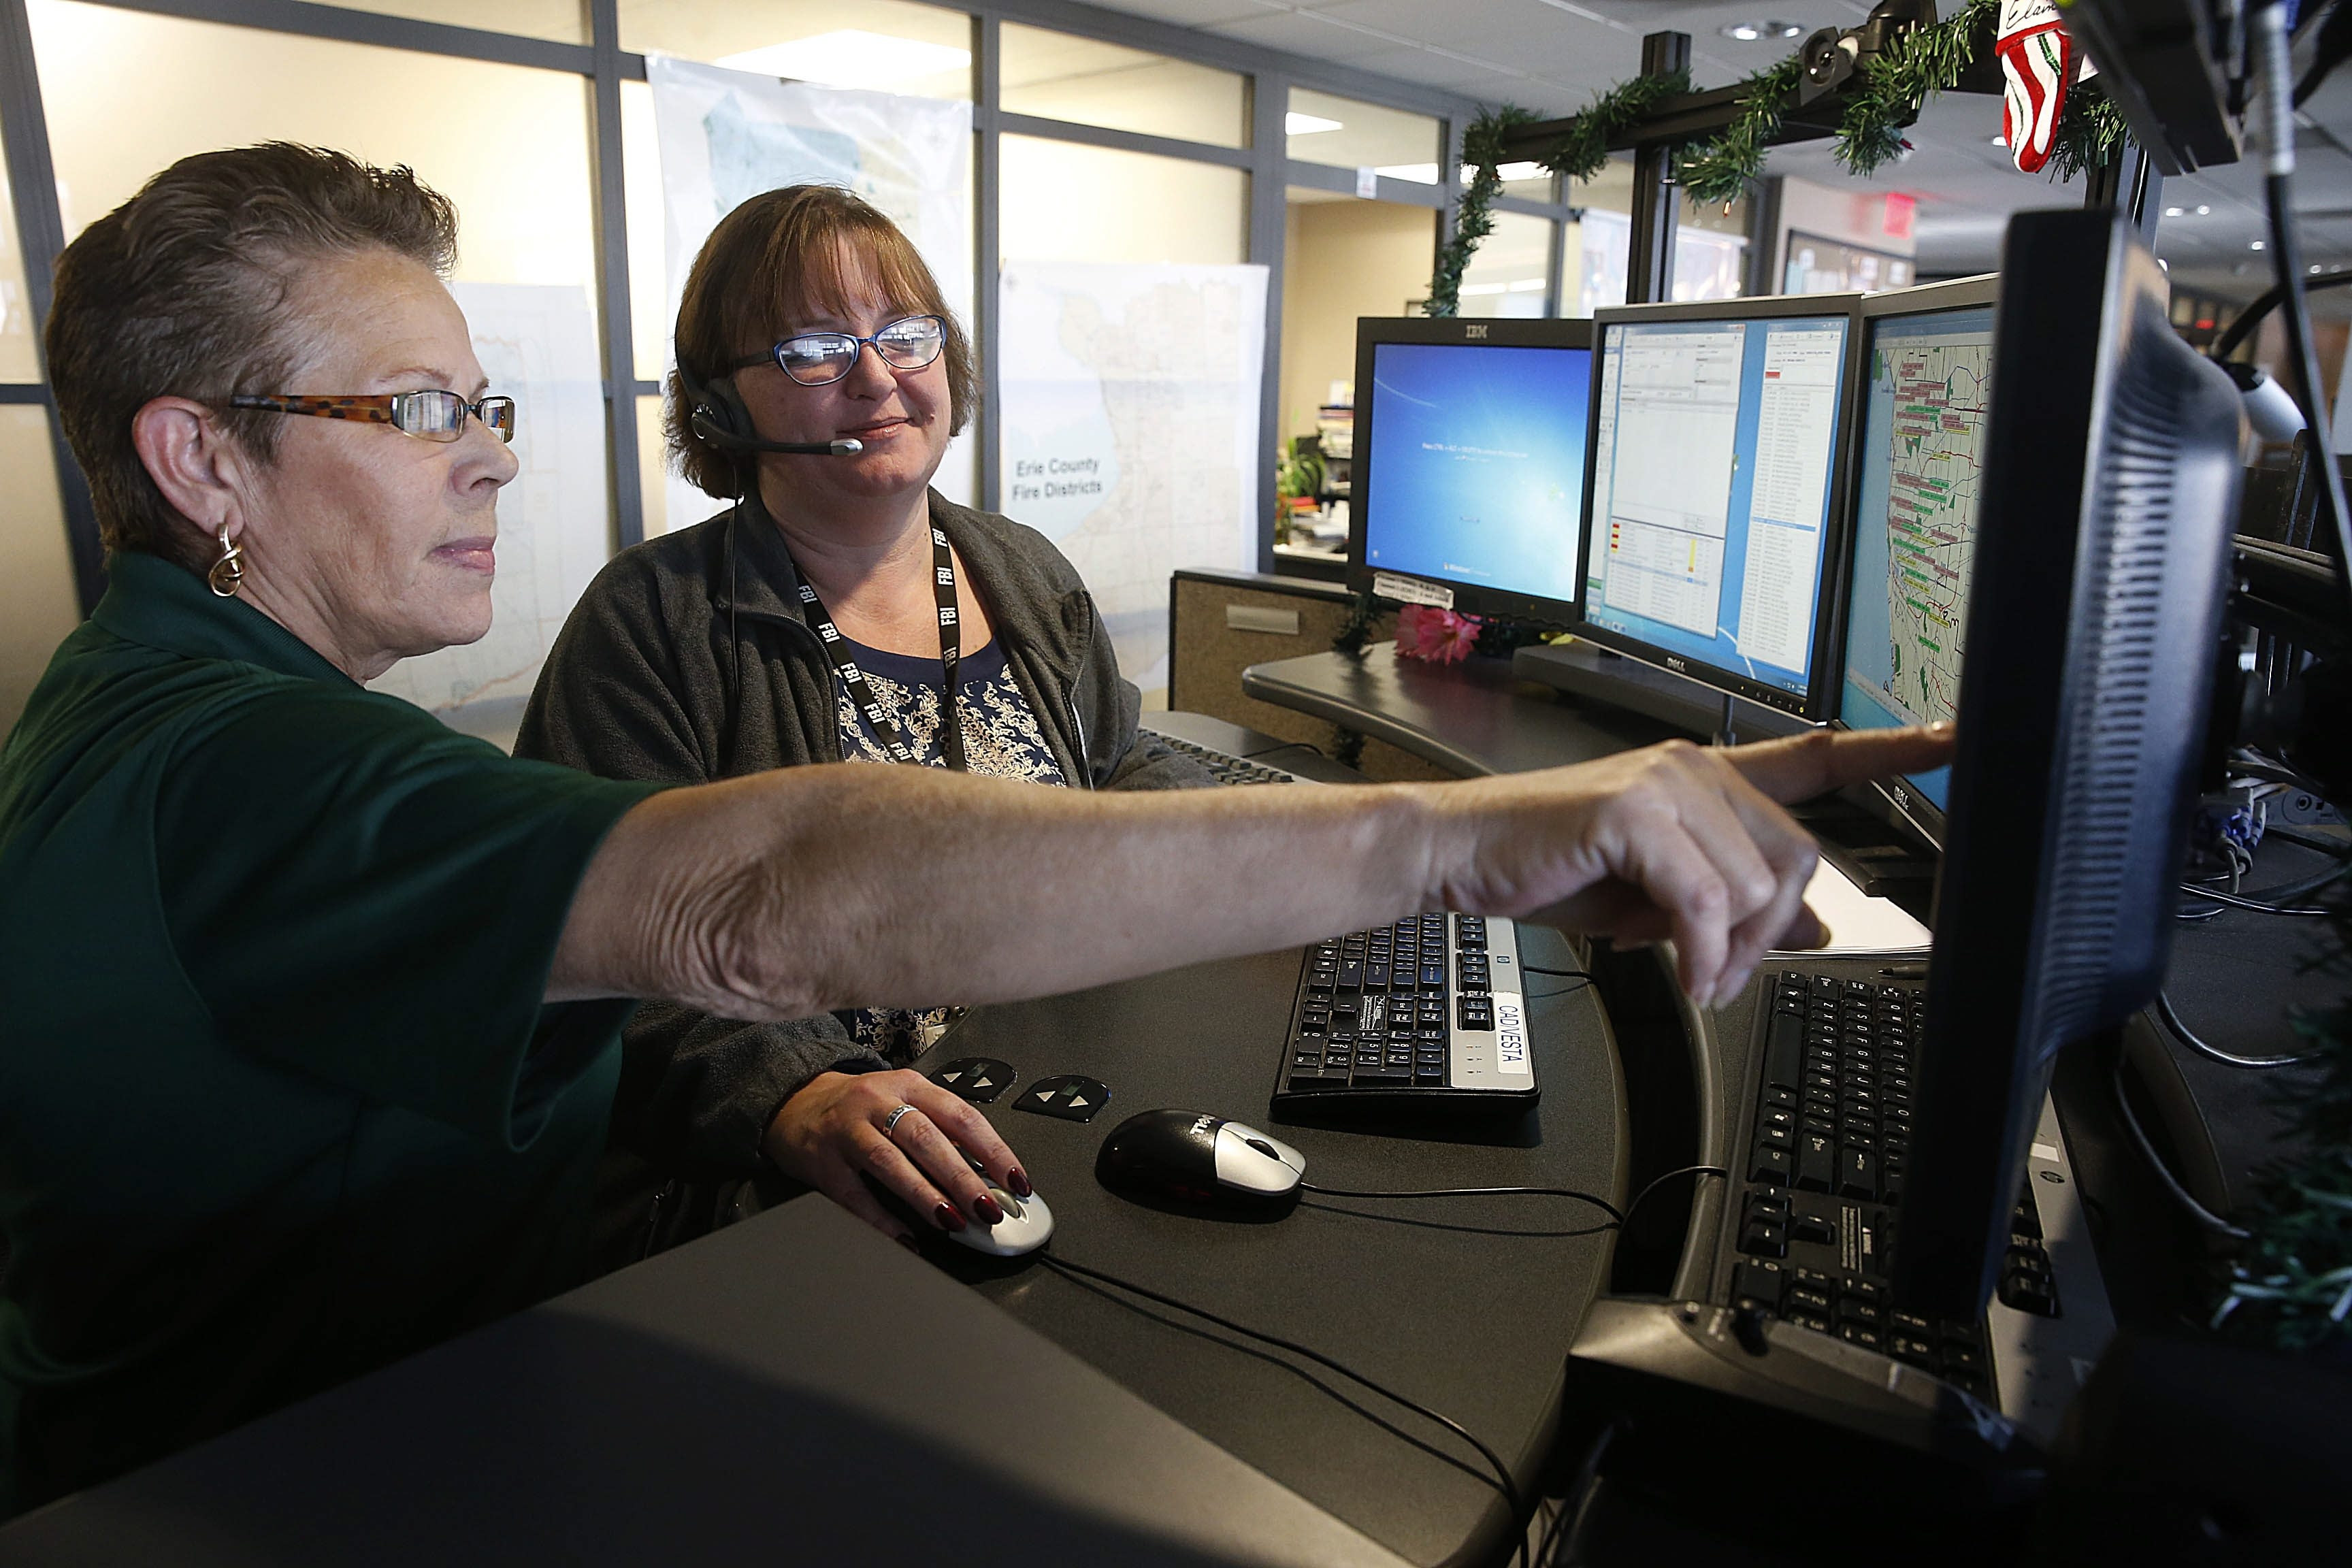 Lisa Sears, right, an eight-year 911 operator, works at her station at Central Police Services in the Public Safety building in Buffalo on Dec. 8. She often uses the expertise of 35-year veteran Judy Torres, left, when she gets an emergency call in Spanish.